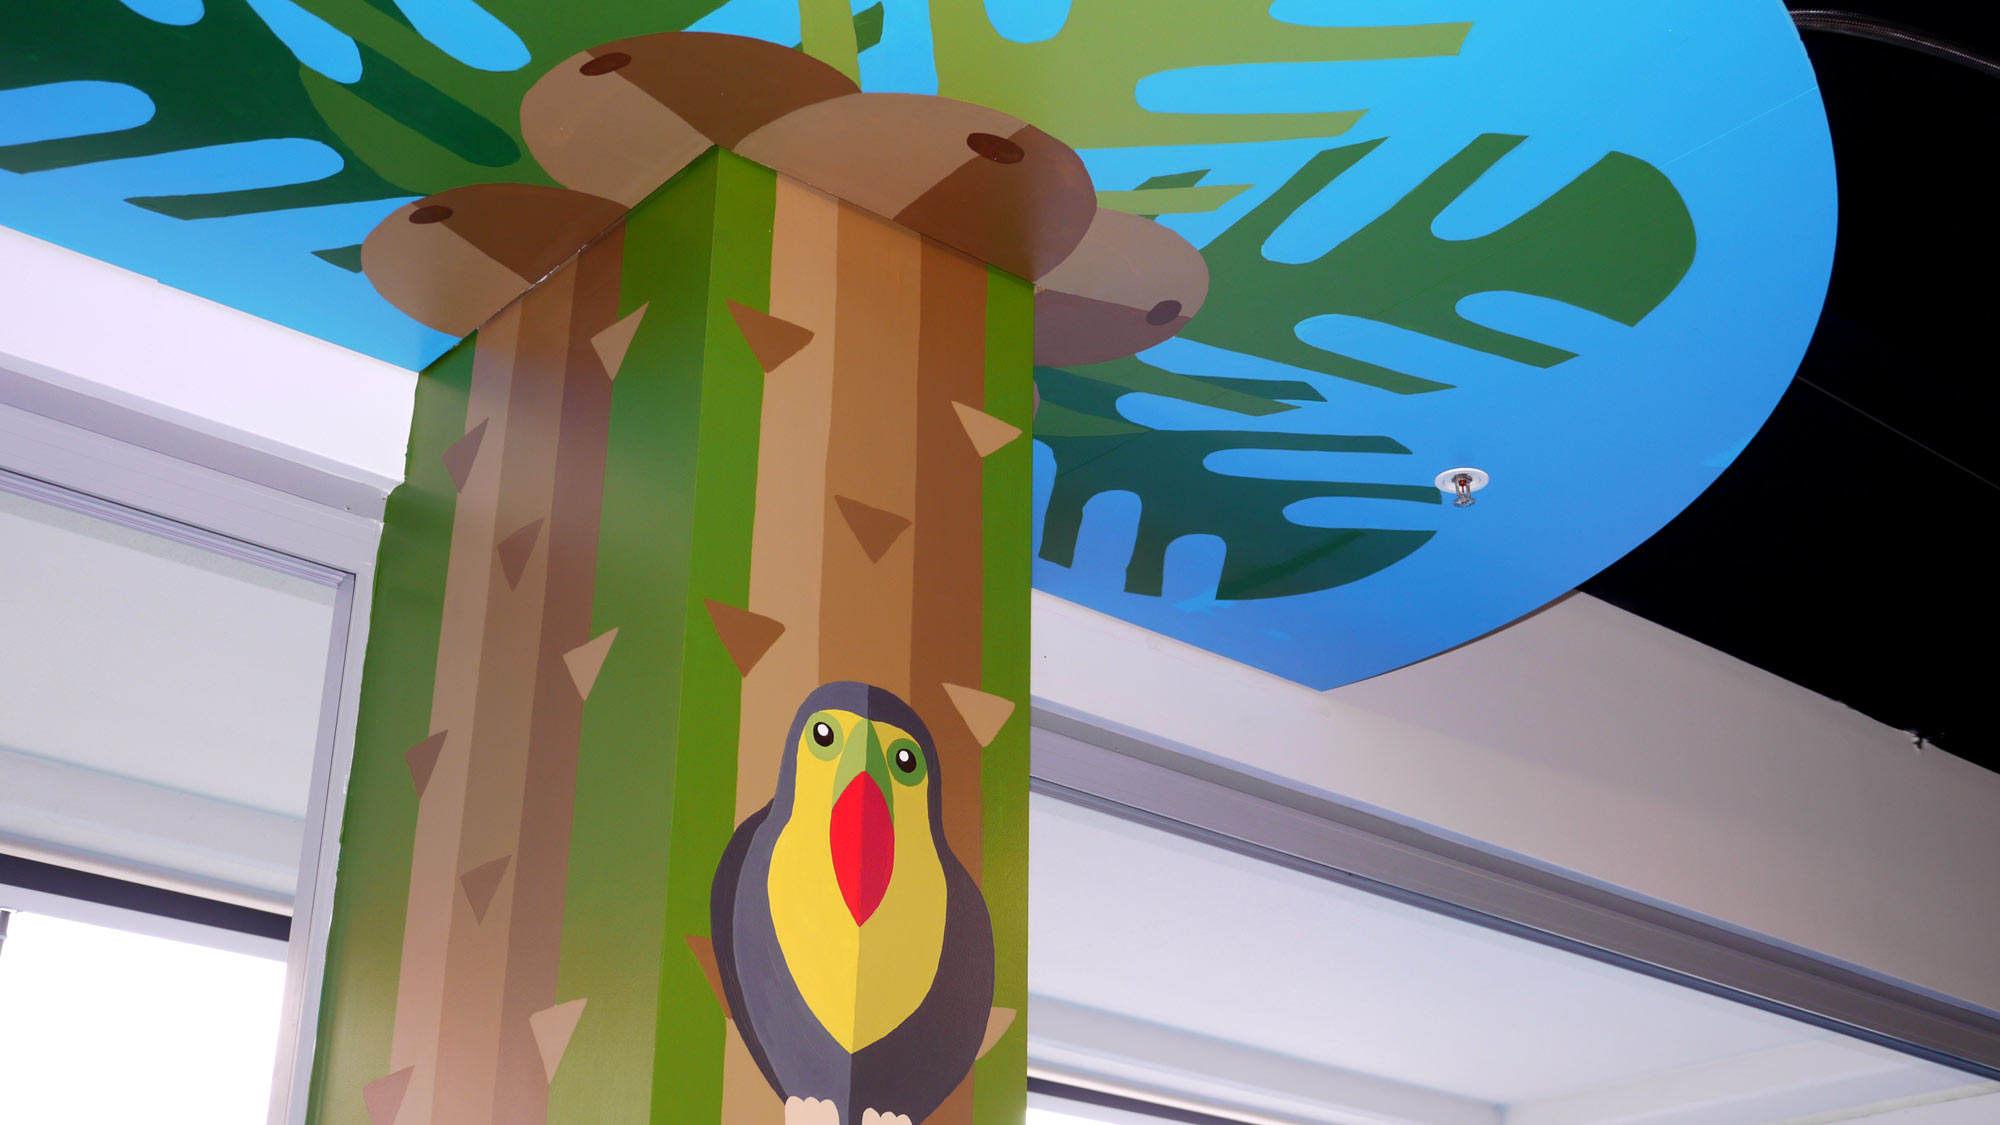 the-art-of-wall-child-care-center-jungle-room-column4